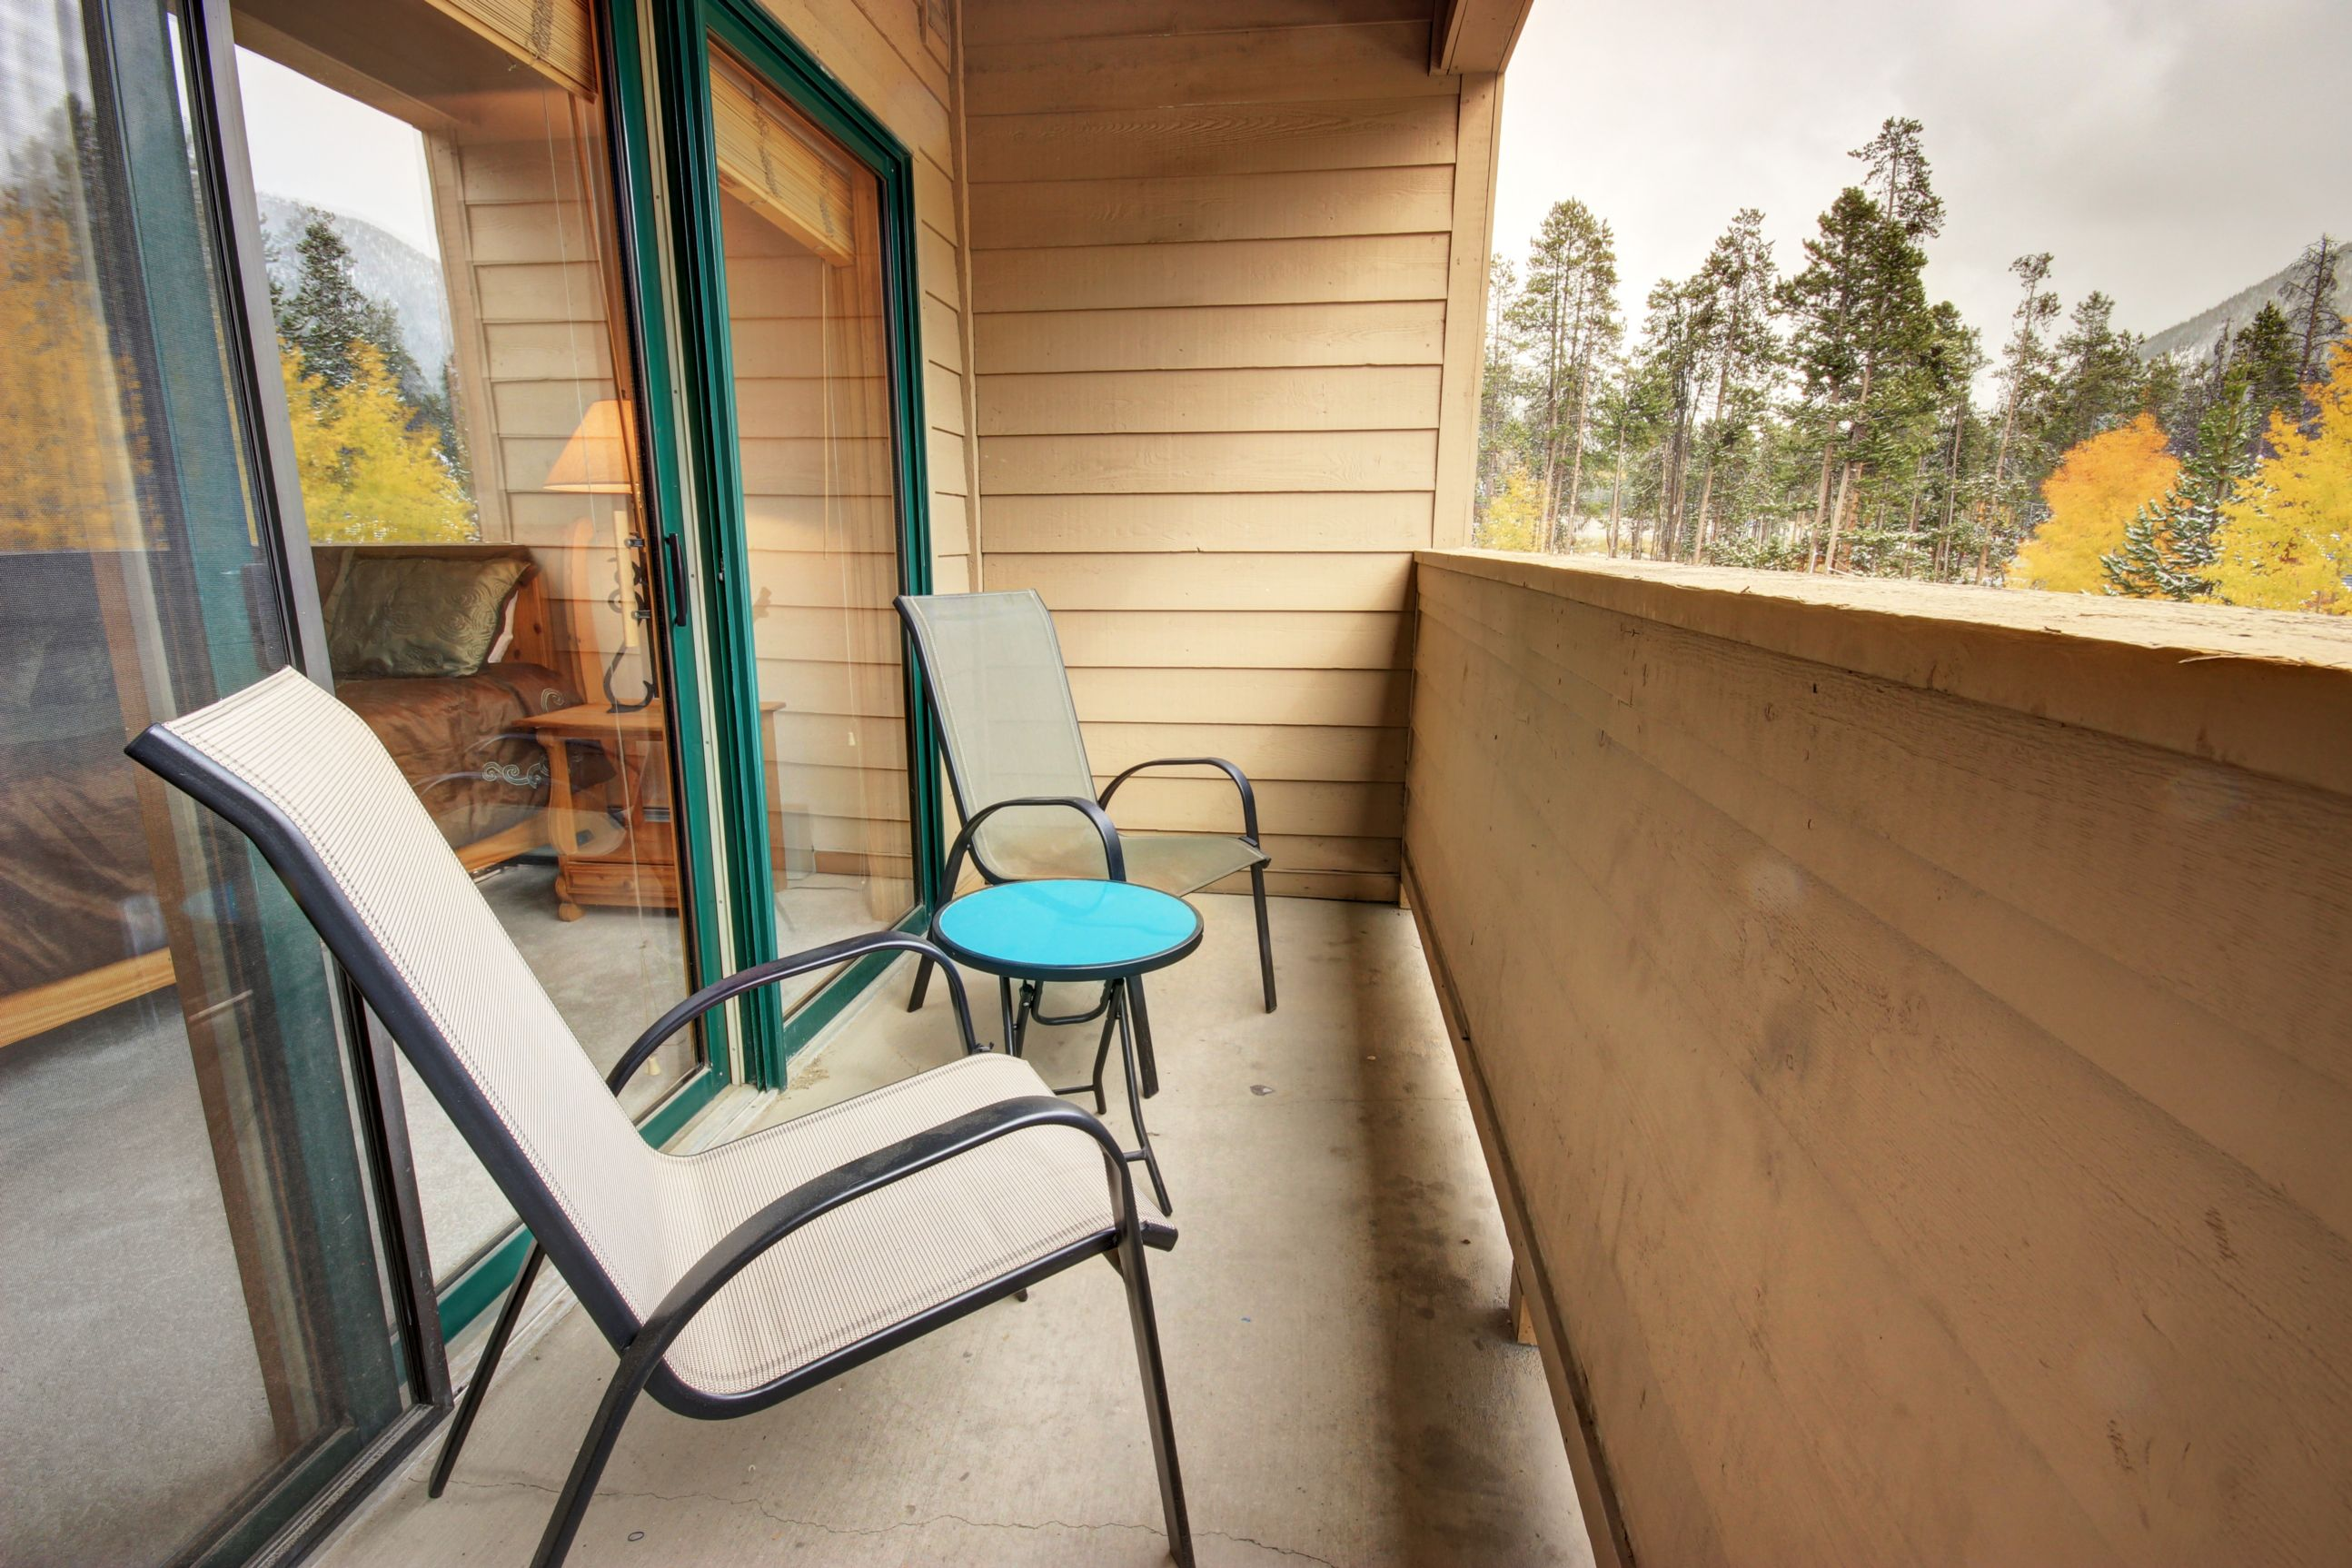 Upper level balcony with outdoor furniture